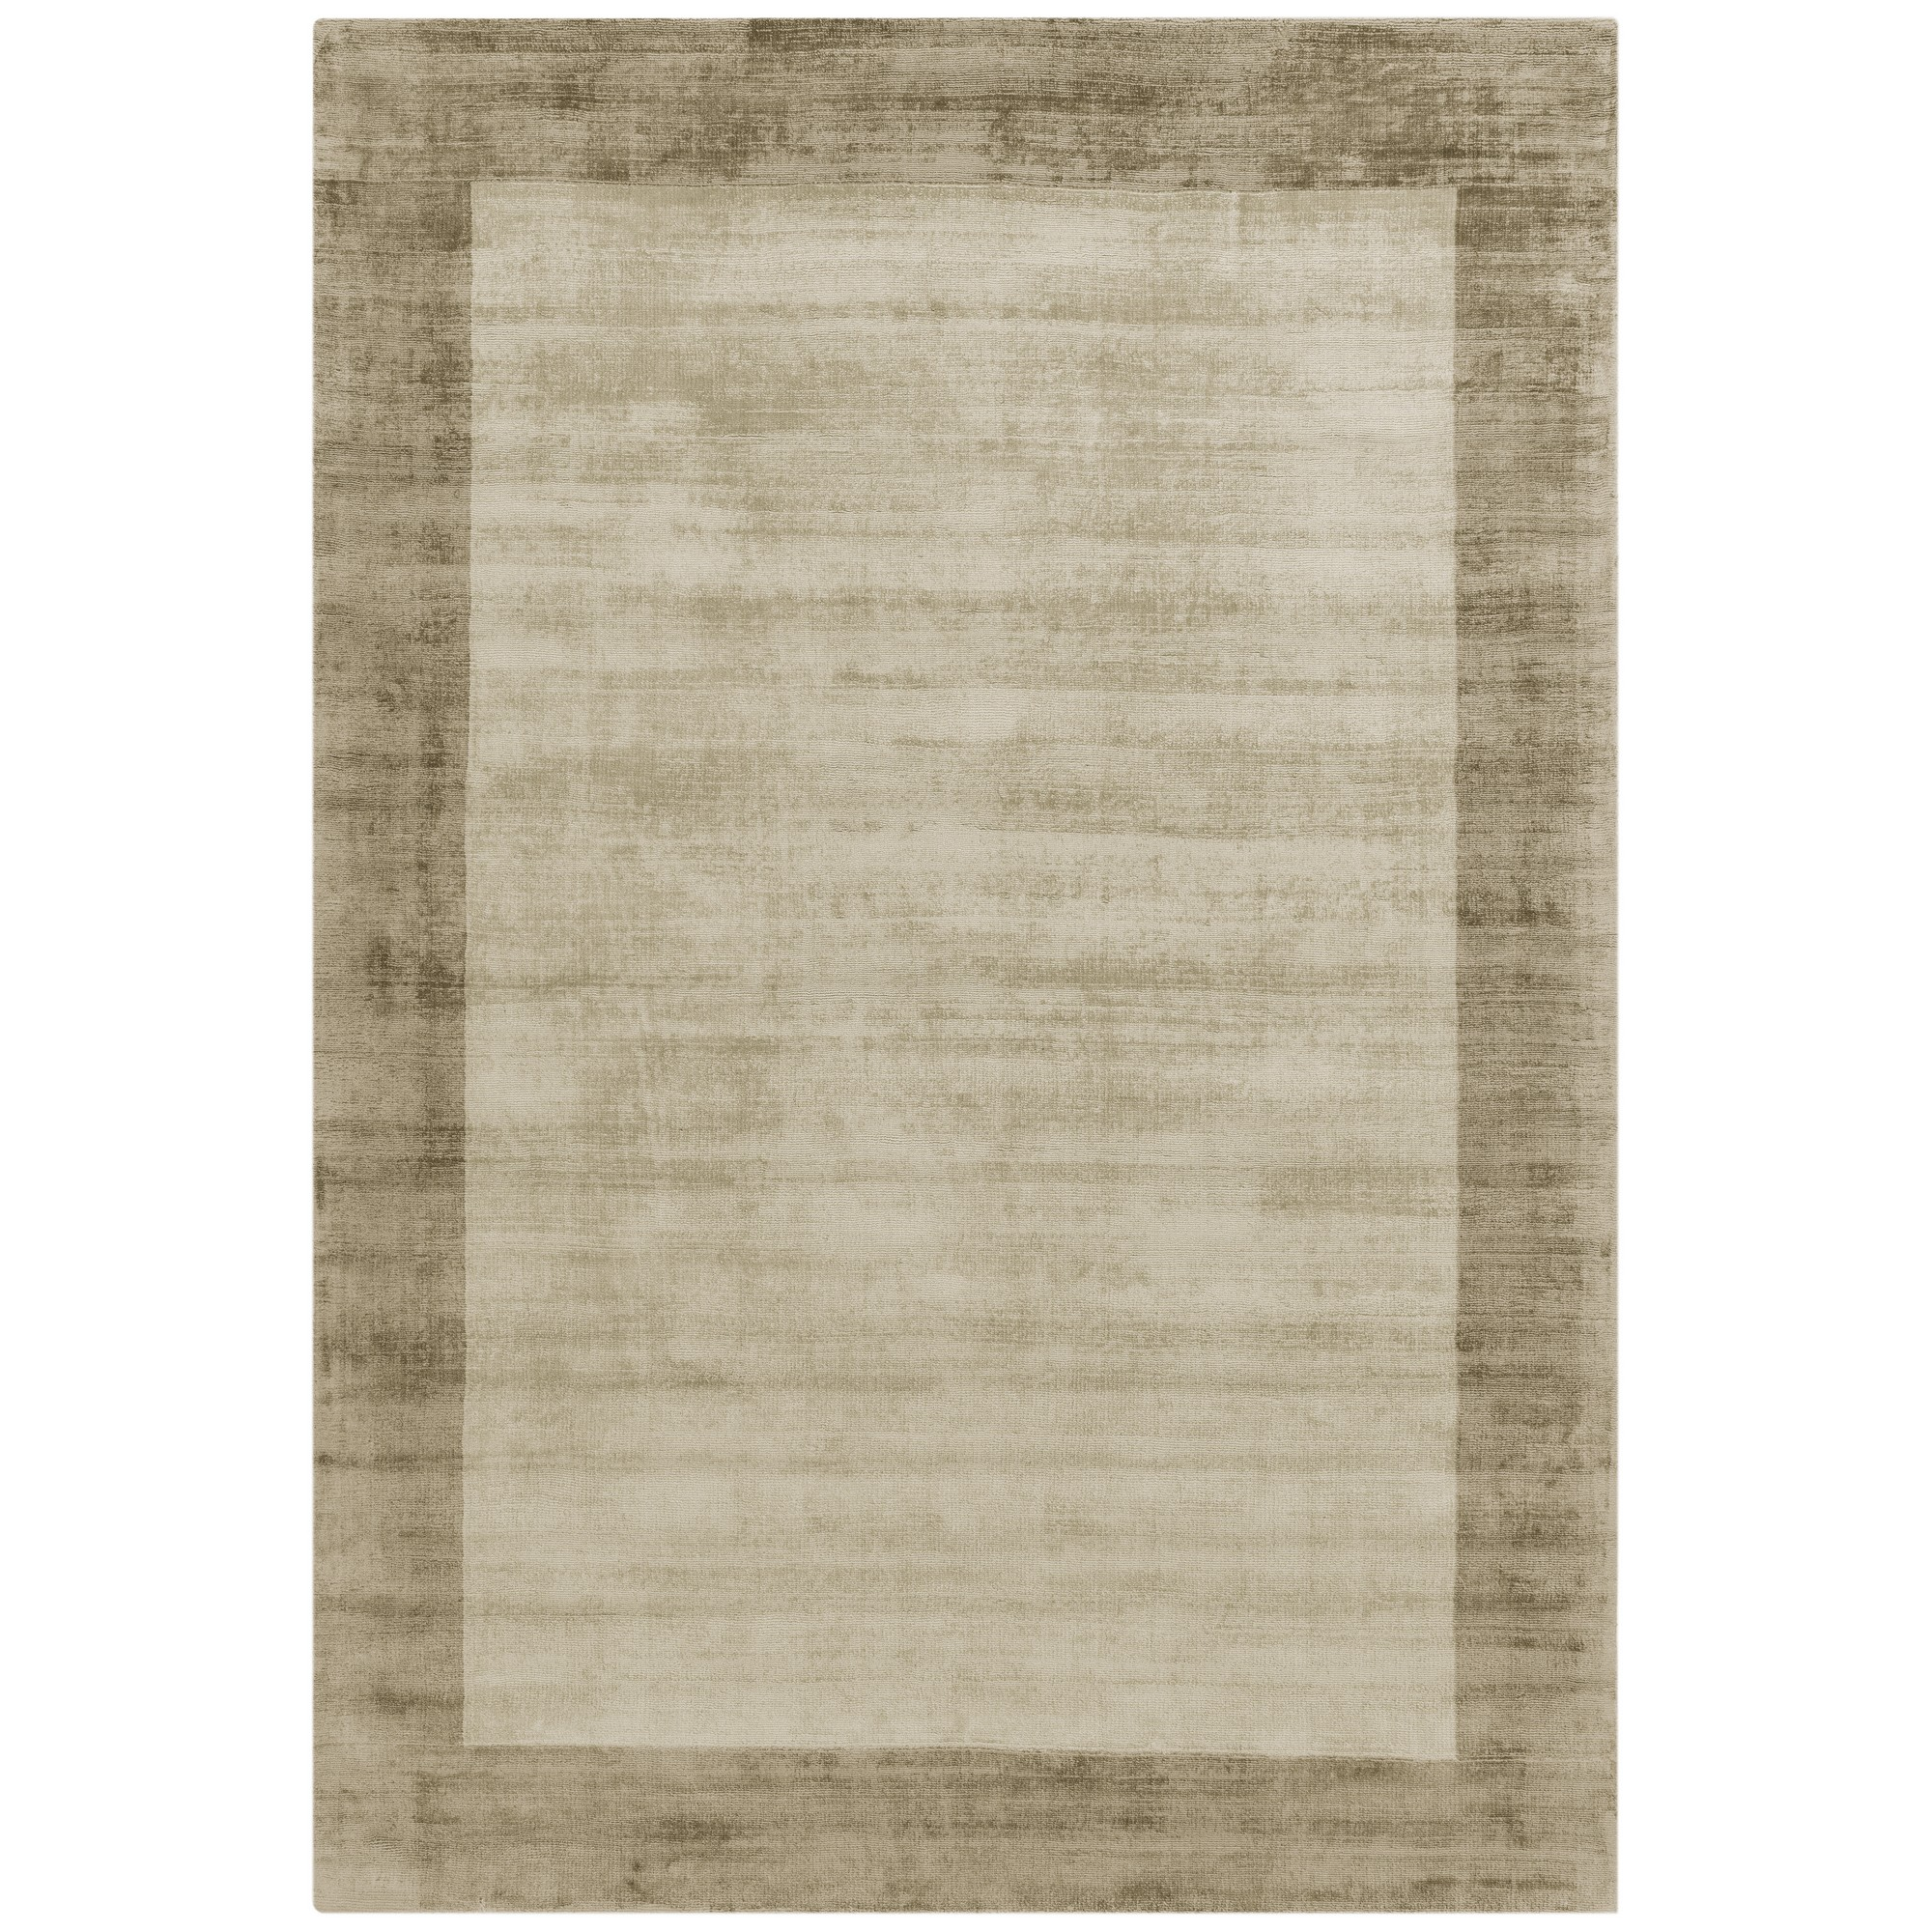 Blade Border Rugs in Smoke Putty